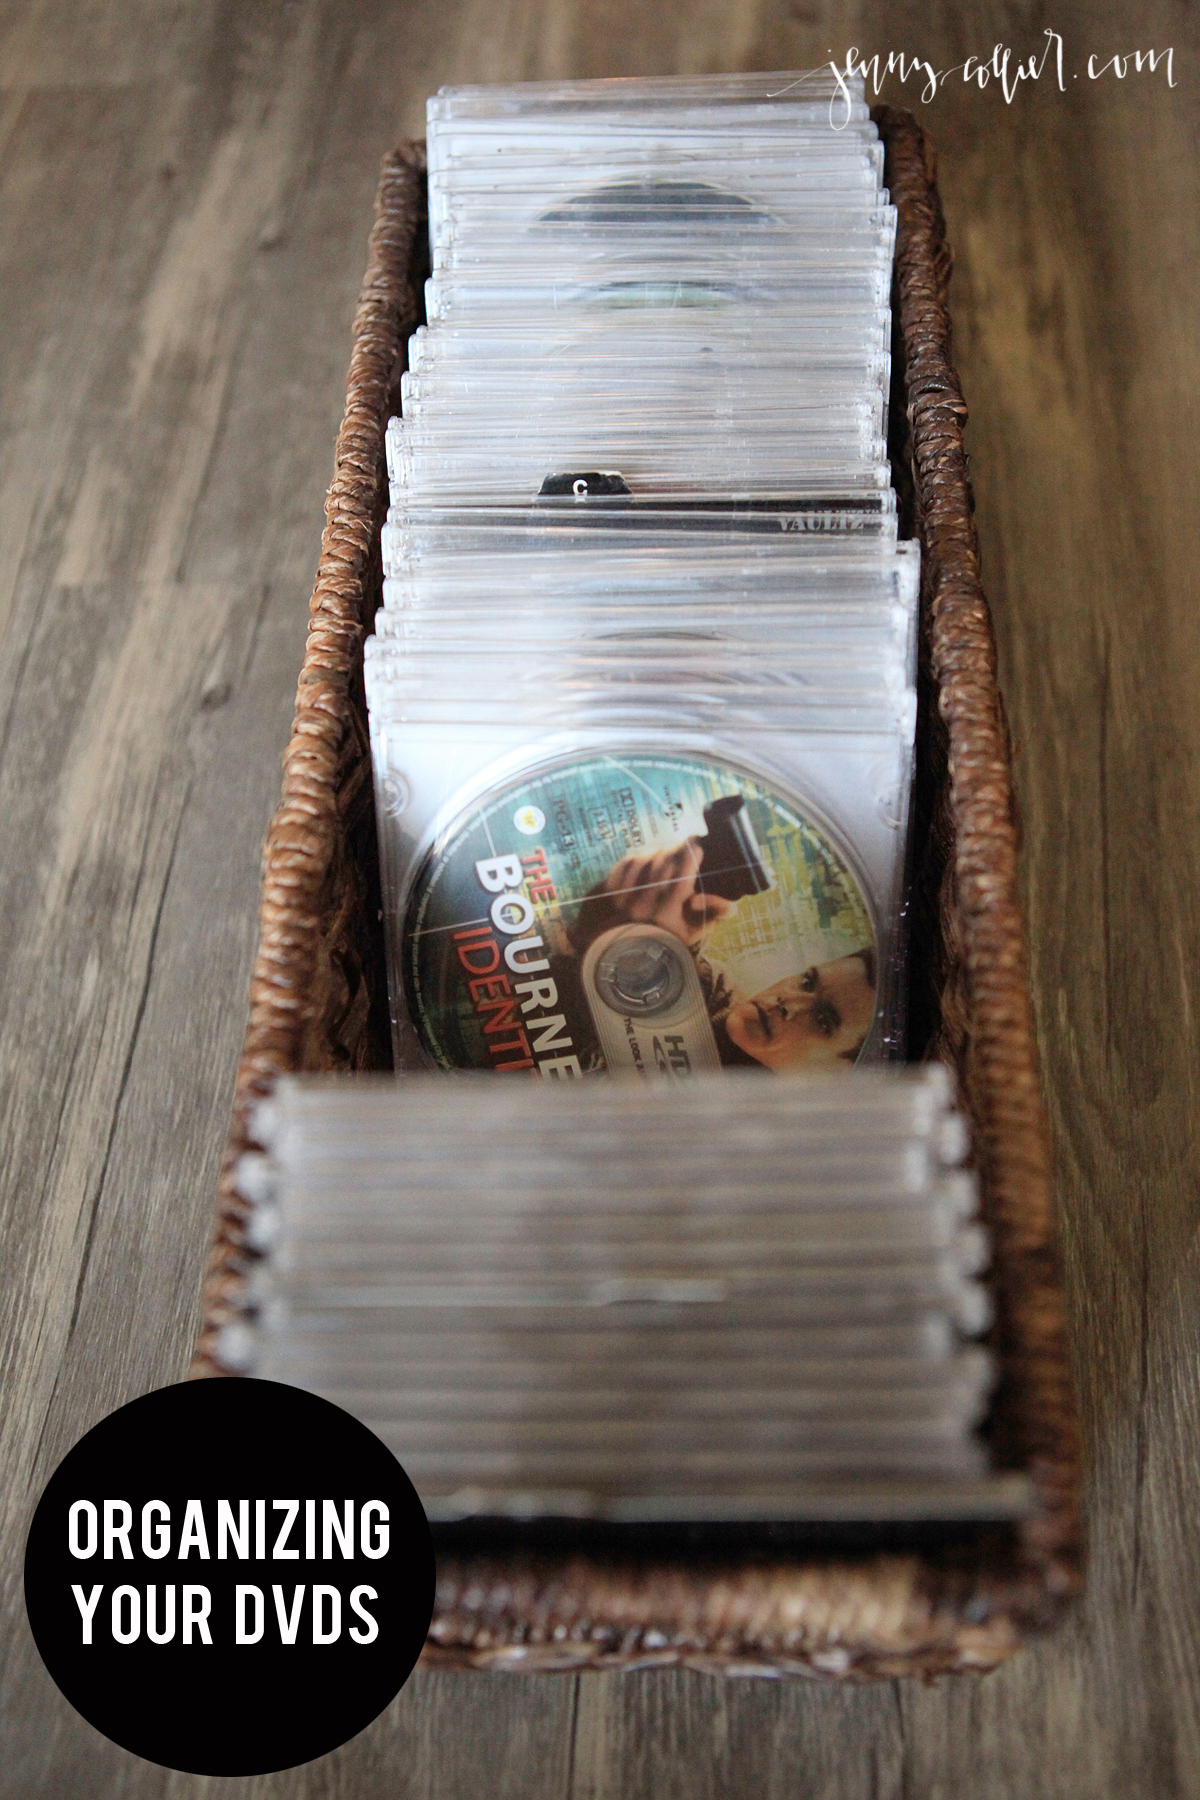 Easter Appetizers: Organizing Your DVDS » Jenny Collier Blog